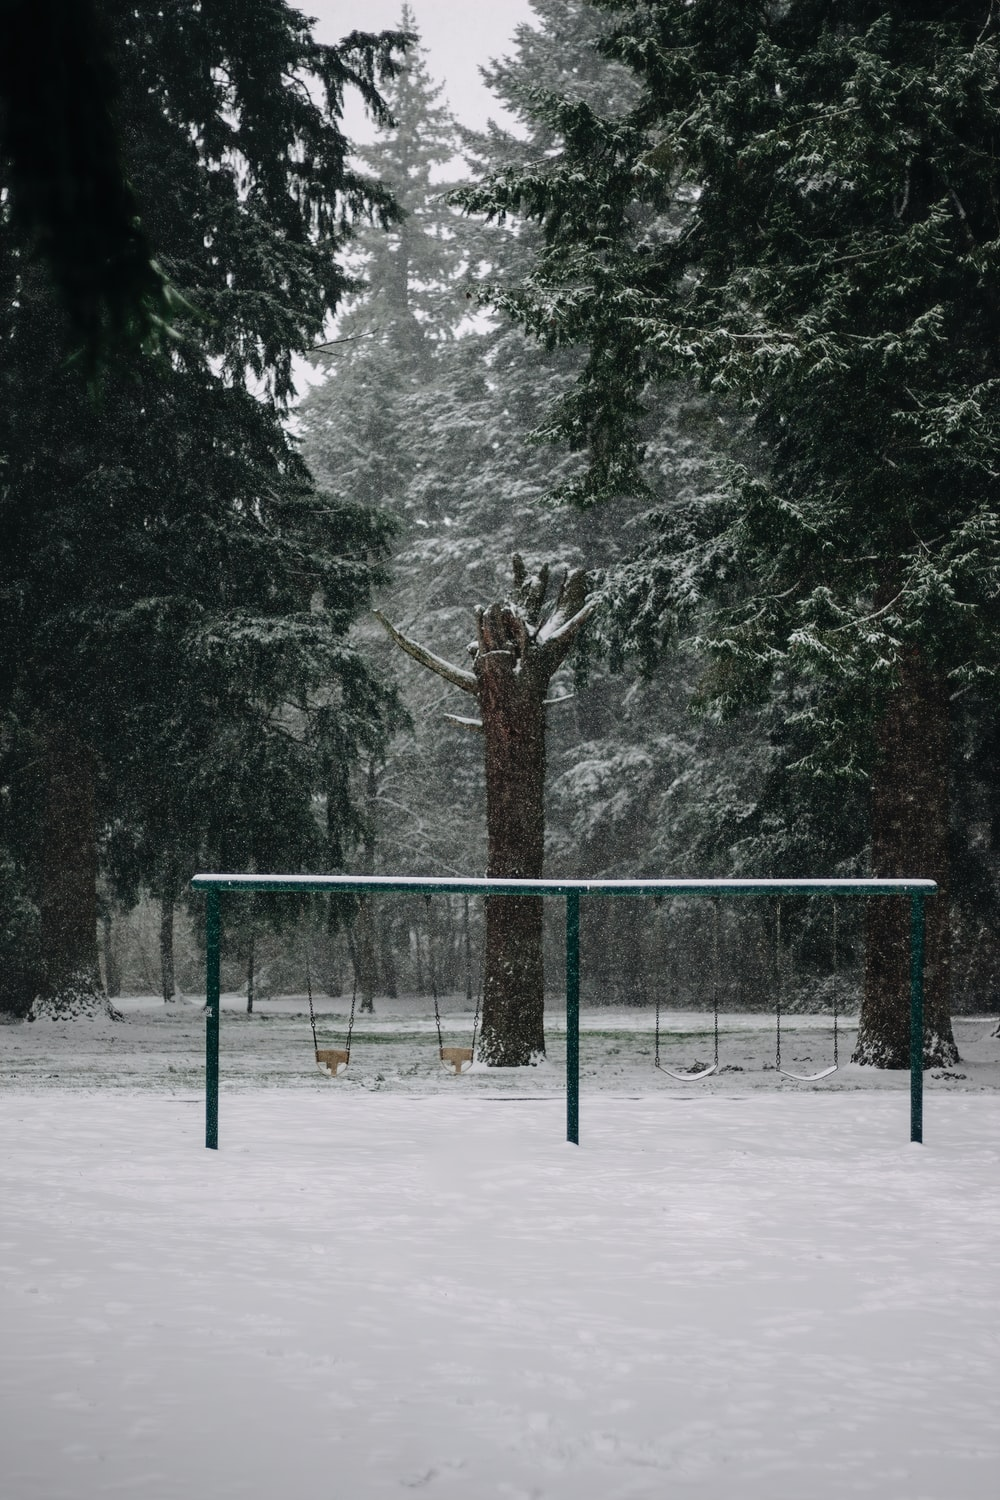 black metal fence near trees covered with snow